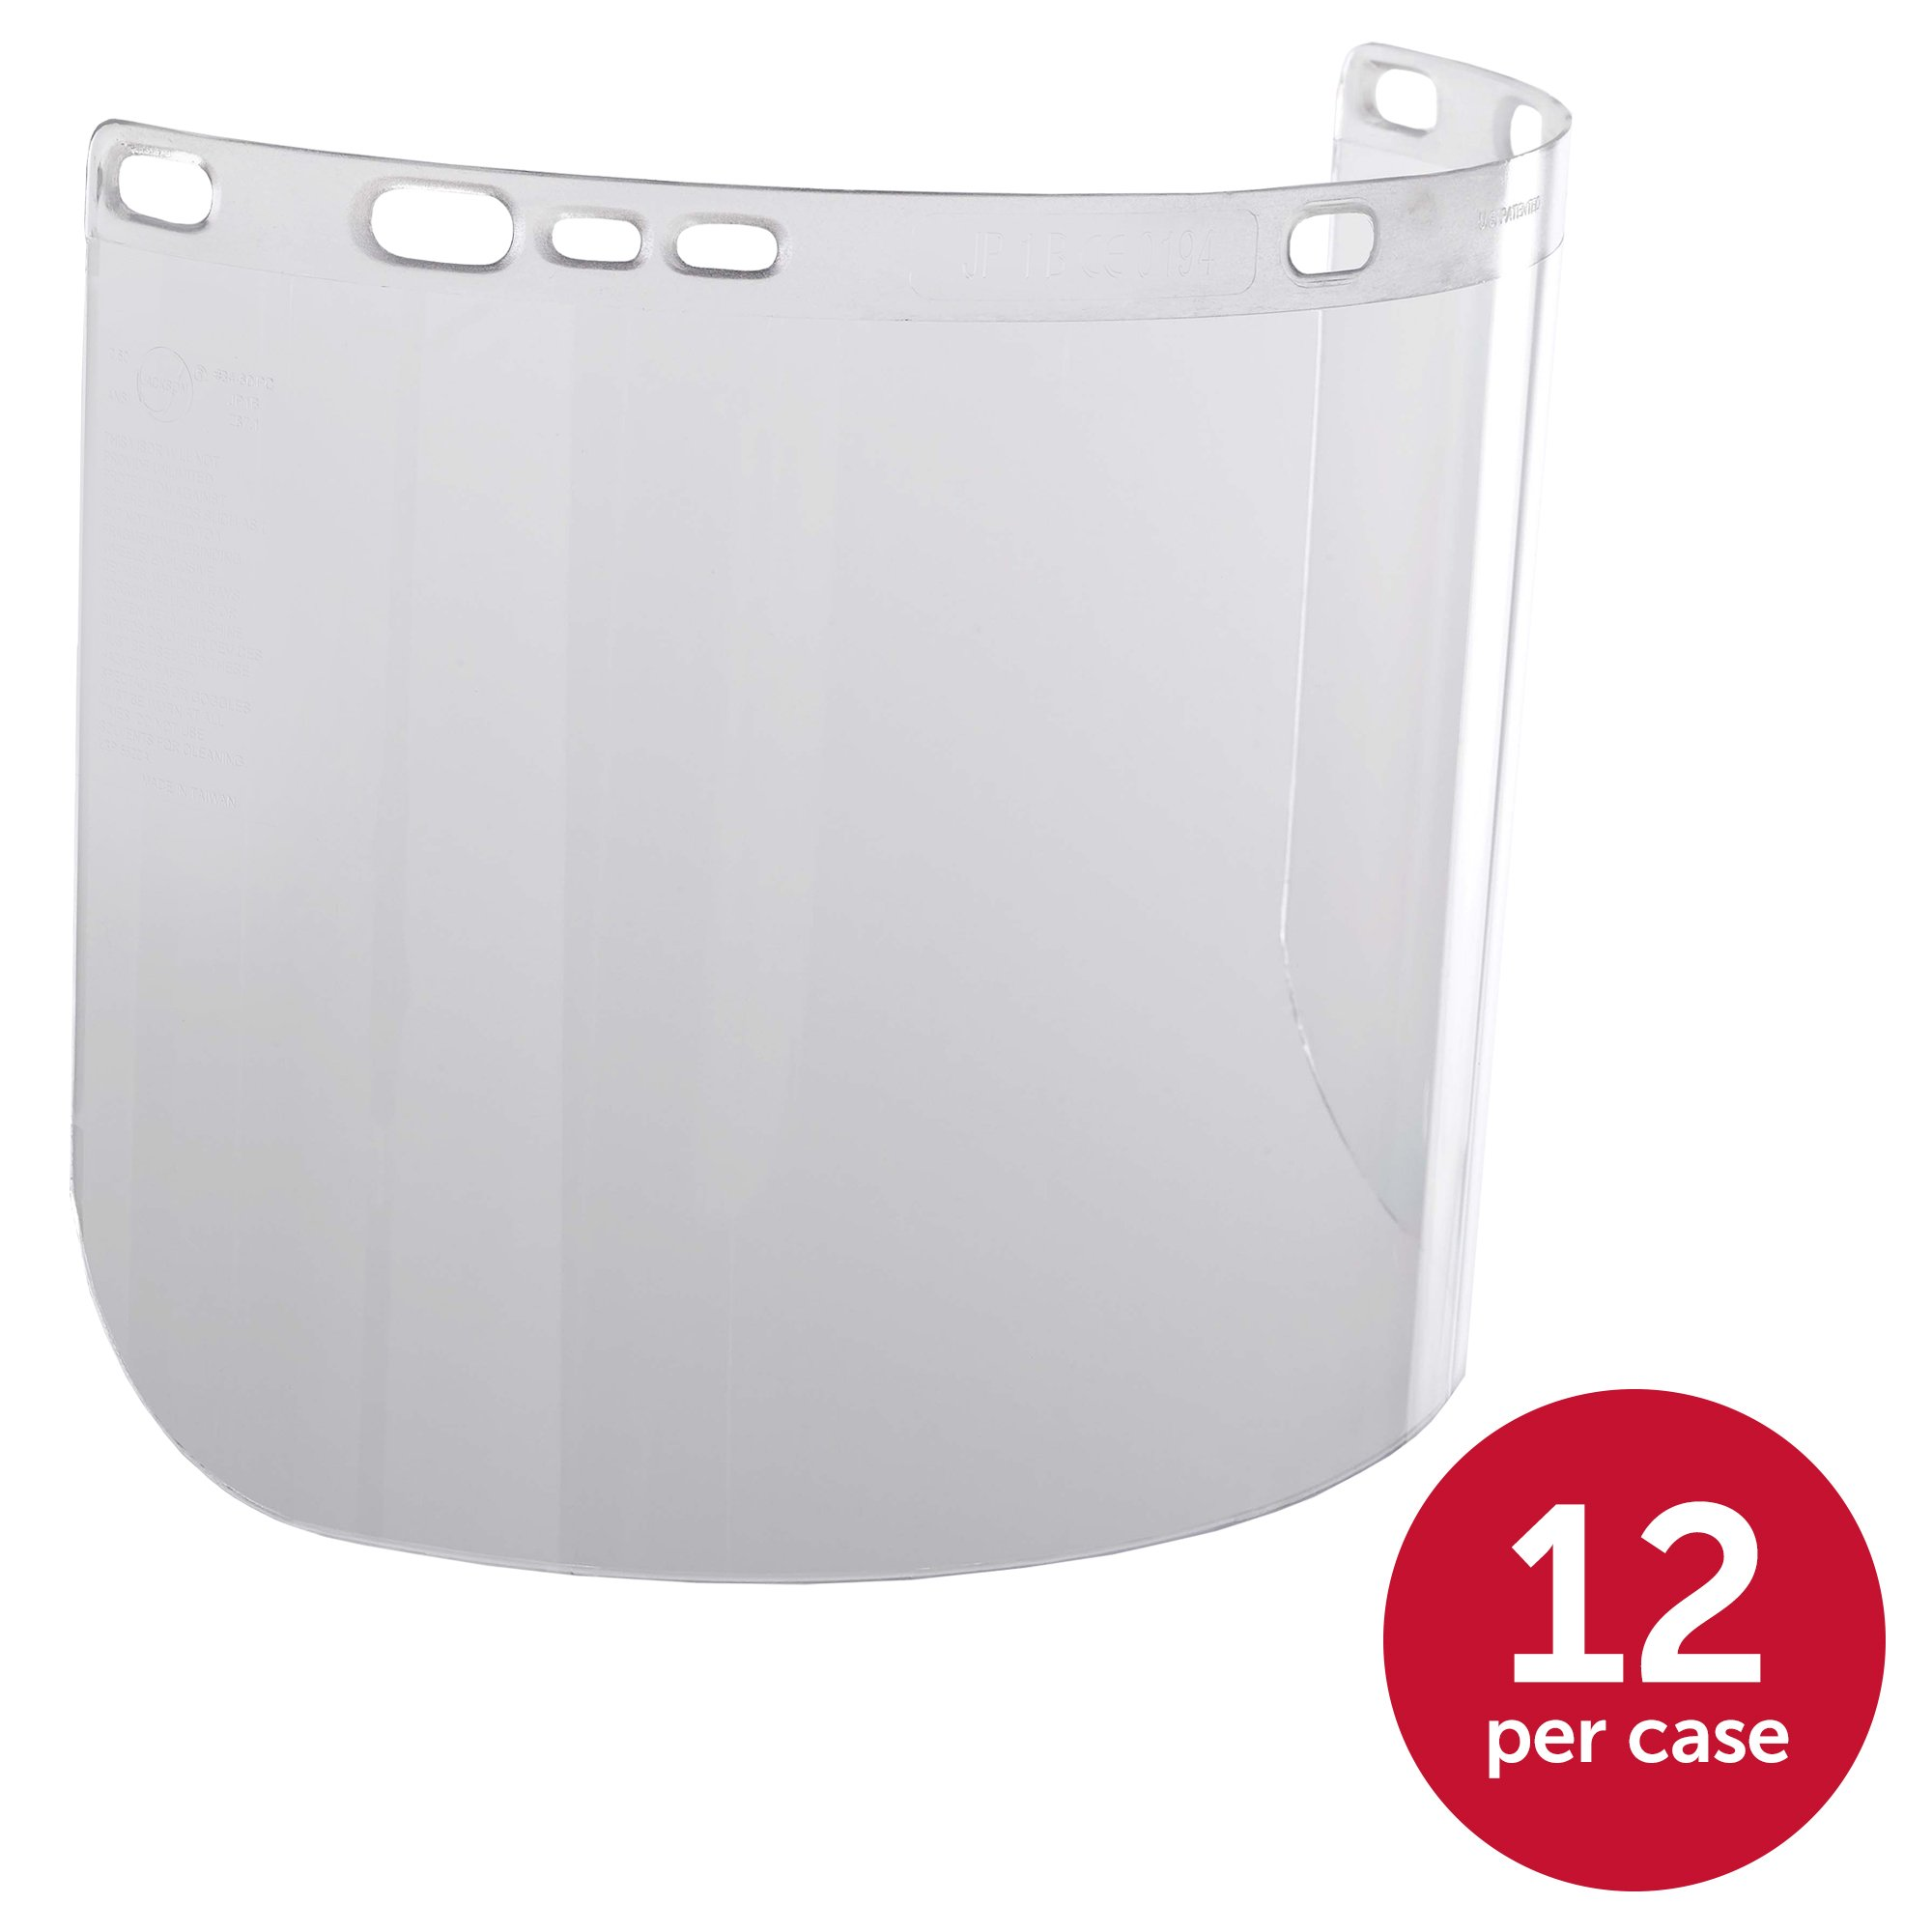 """Jackson Safety F20 High Impact Face Shield (14132), Polycarbonate, 8"""" x 15.5"""" x 0.06"""", Clear, Face Protection, Unbound, 36 Shields / Case by Jackson Safety (Image #2)"""